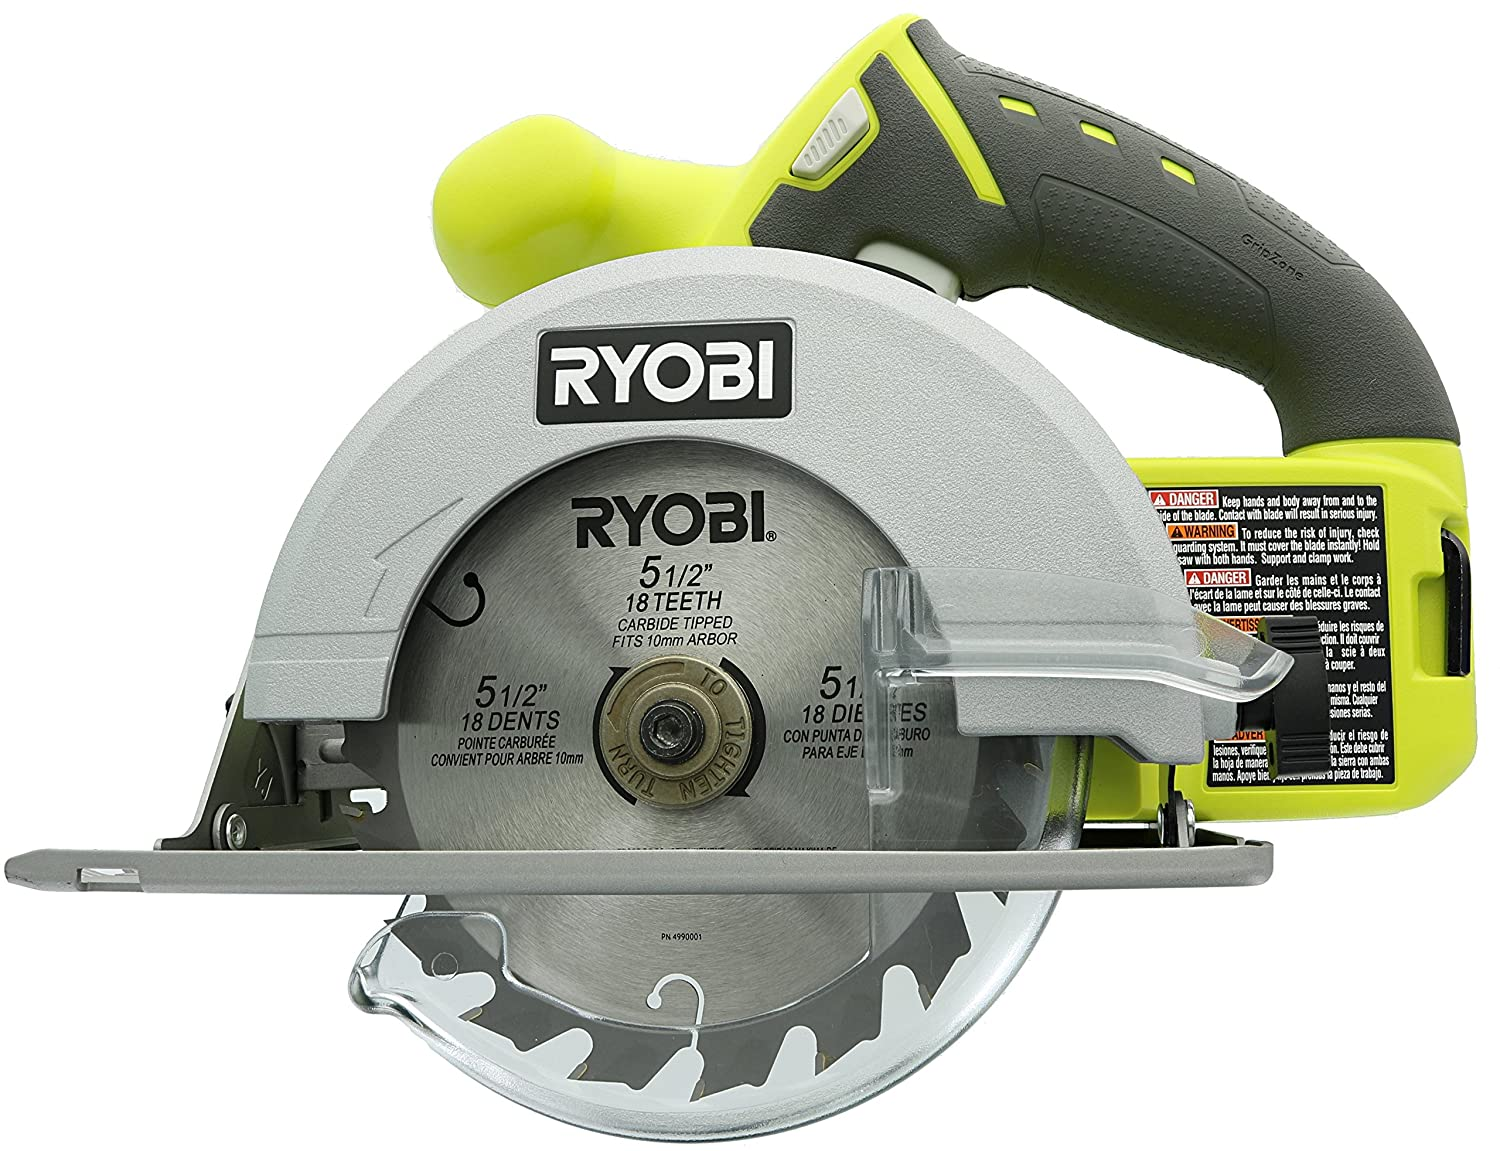 Ryobi p504g one 18 v lithium ion cordless 5 12 inch circular saw w ryobi p504g one 18 v lithium ion cordless 5 12 inch circular saw w carbide tip blade battery not included power tool only power circular saws greentooth